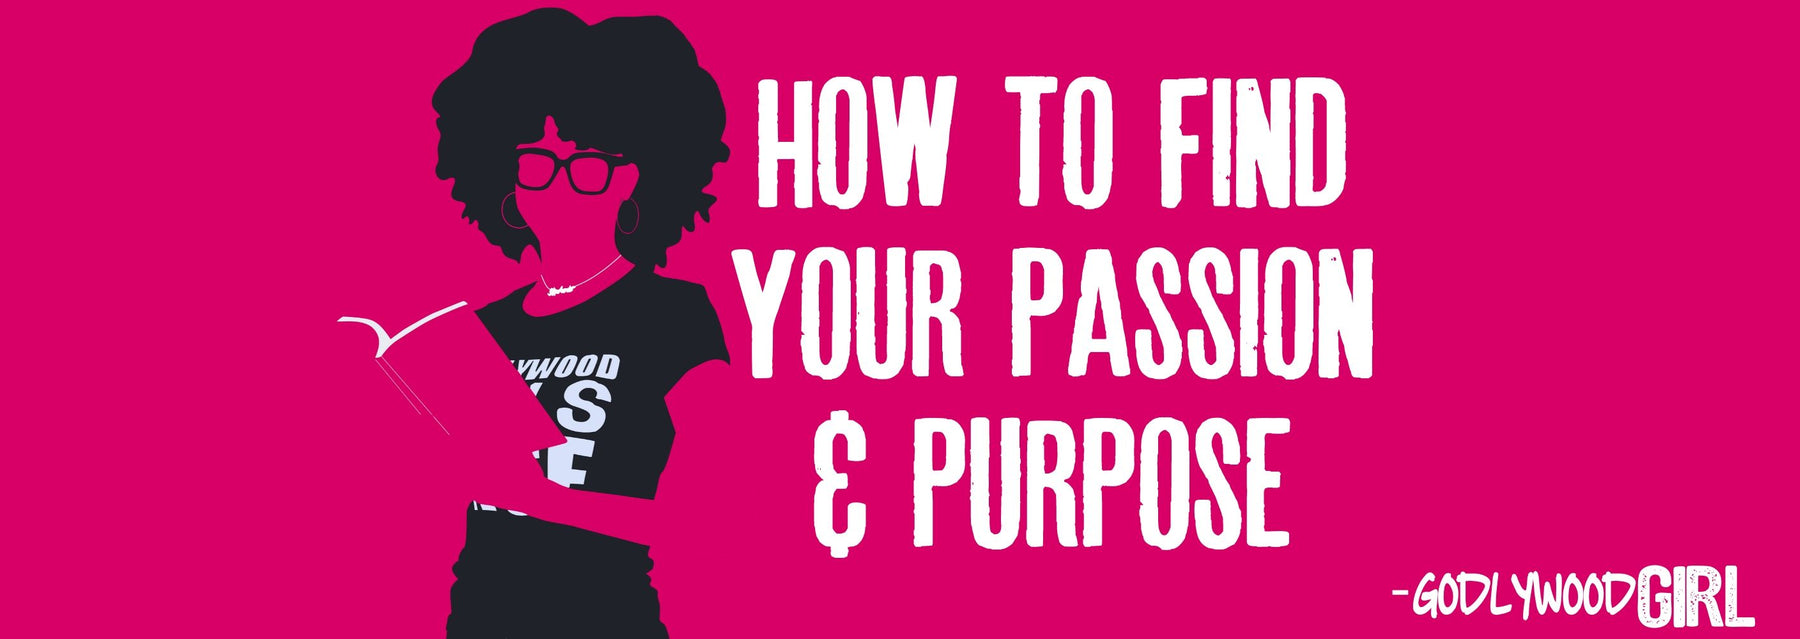 How To Find Your Purpose And Passion In Life || (And Know Your Life Purpose In 5 Minutes)